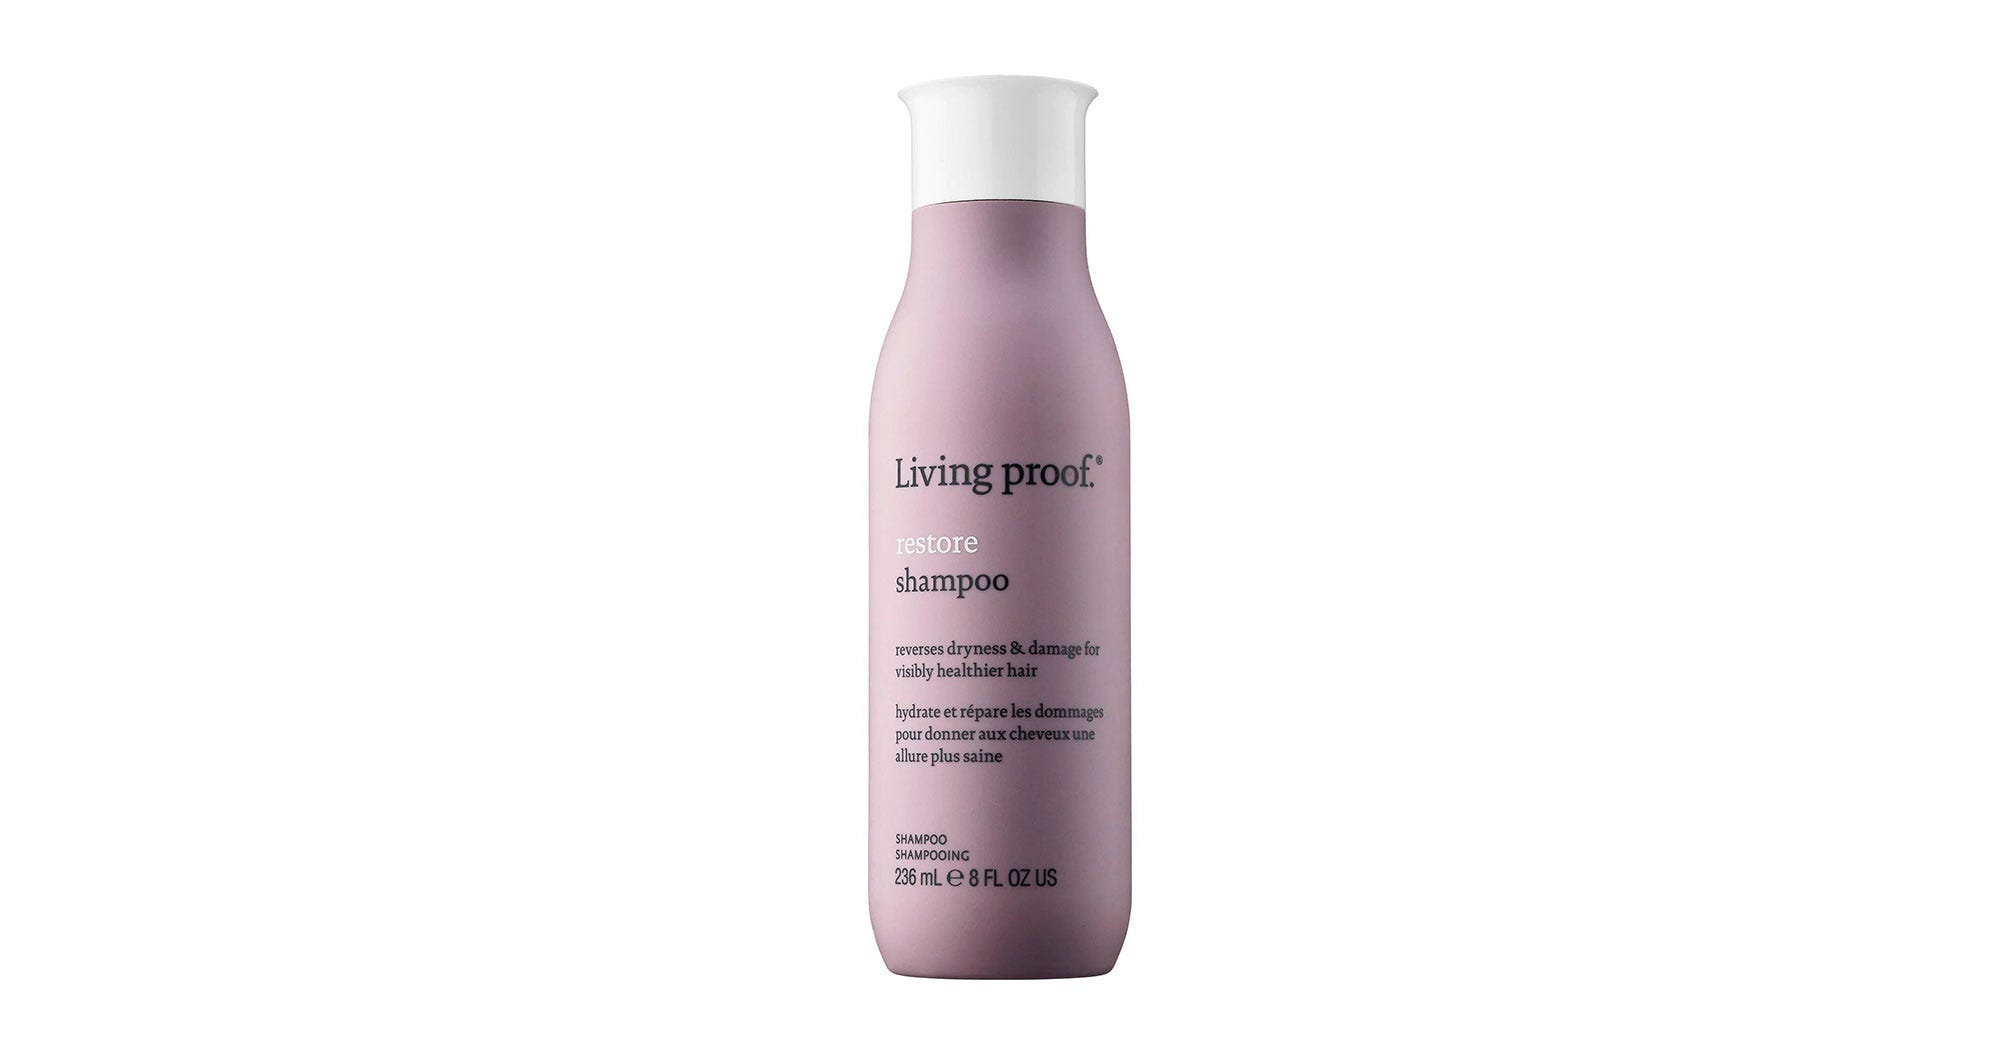 Best Sulfate Free Shampoo 2020 For Every Hair Type